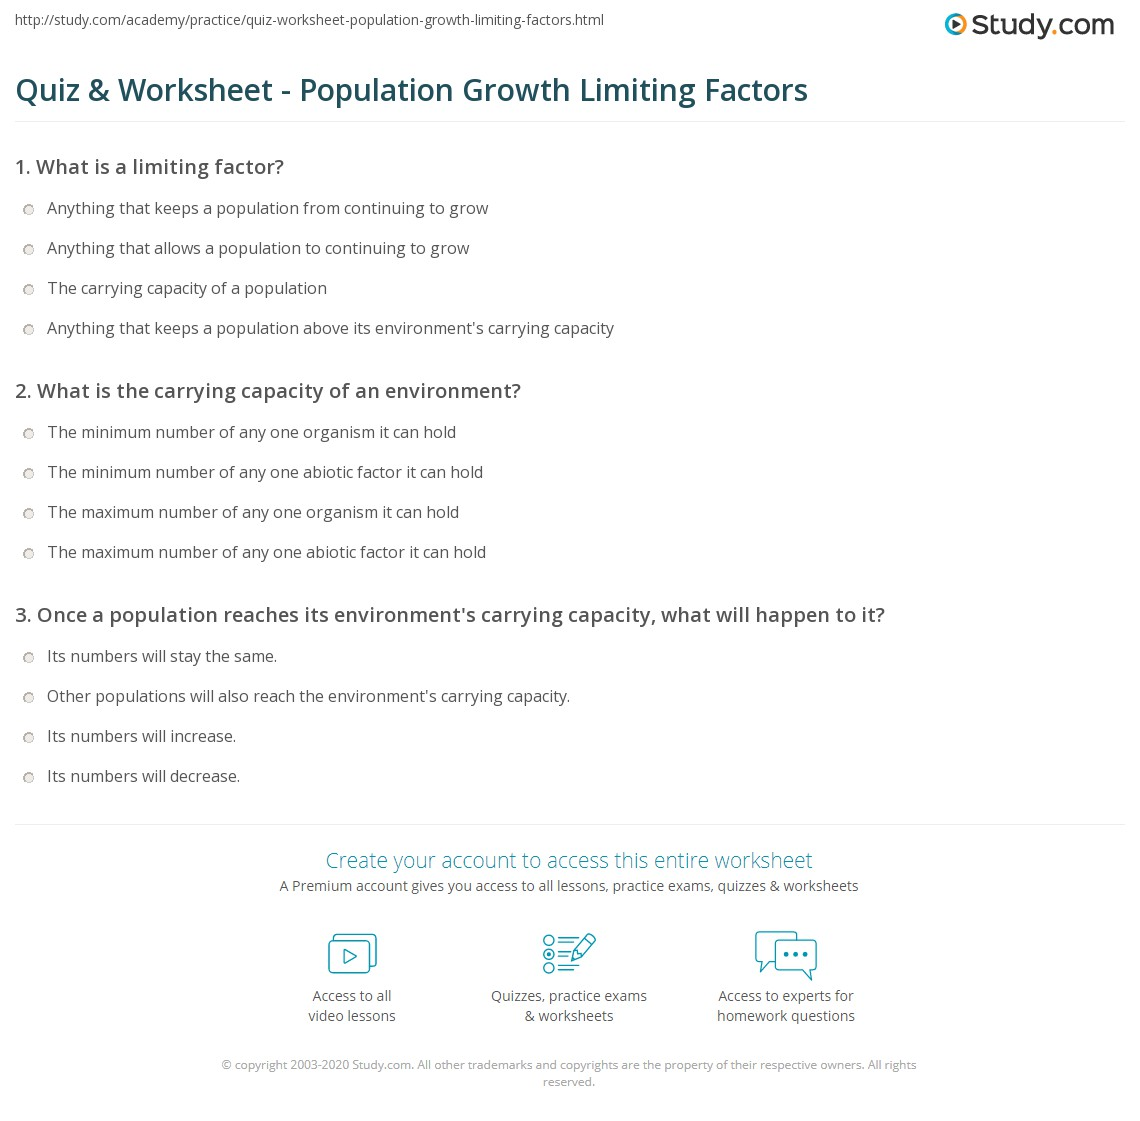 Quiz & Worksheet - Population Growth Limiting Factors | Study.com